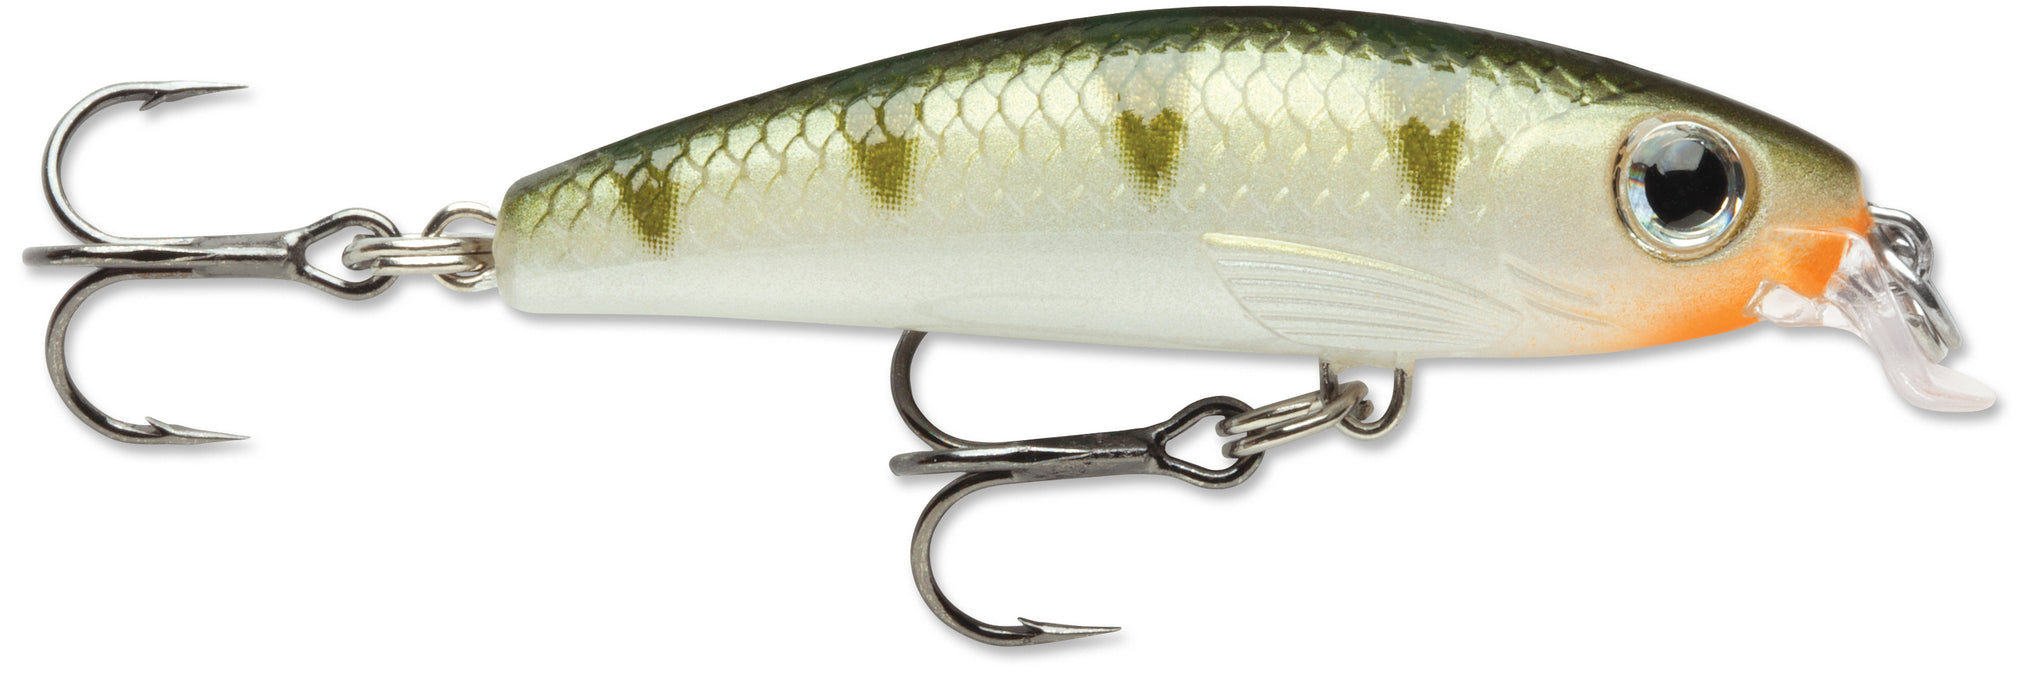 Rapala ULM06FT Ultra Light Minnow Fire Tiger 06 Fishing Lure